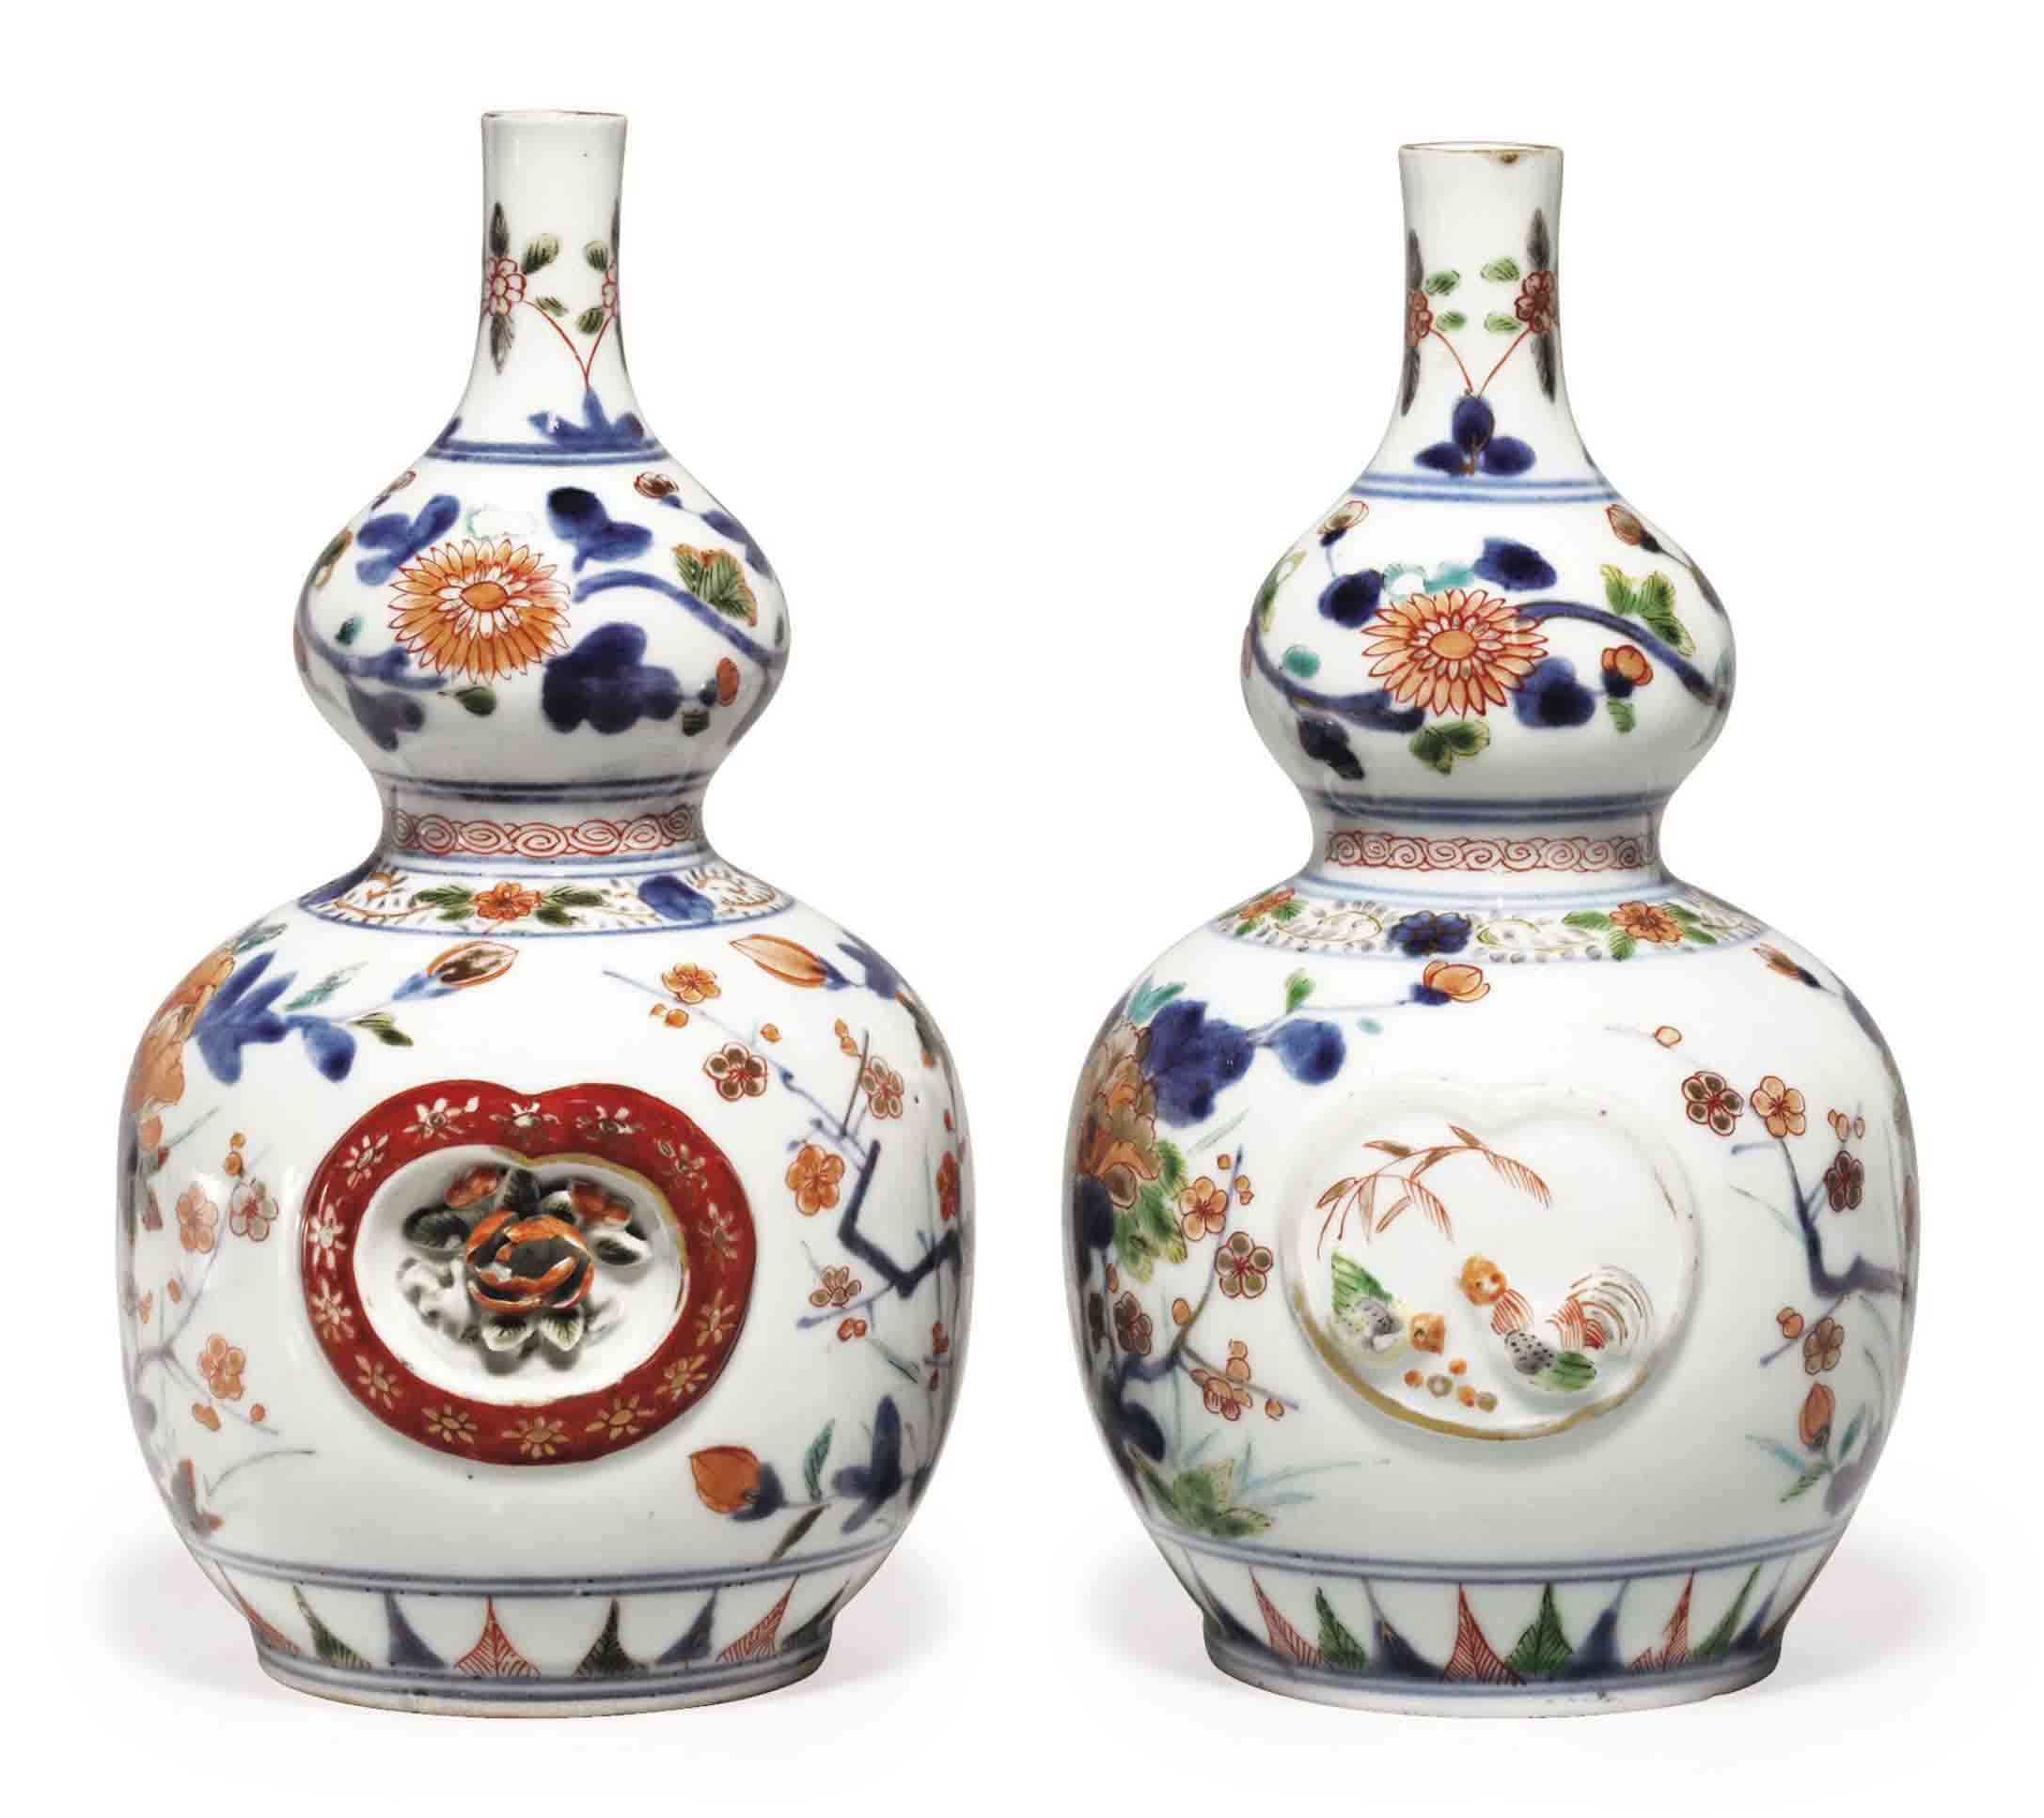 A PAIR OF JAPANESE HIZEN WARE IMARI STYLE DOUBLE GOURD-FORM PORCELAIN BOTTLES,